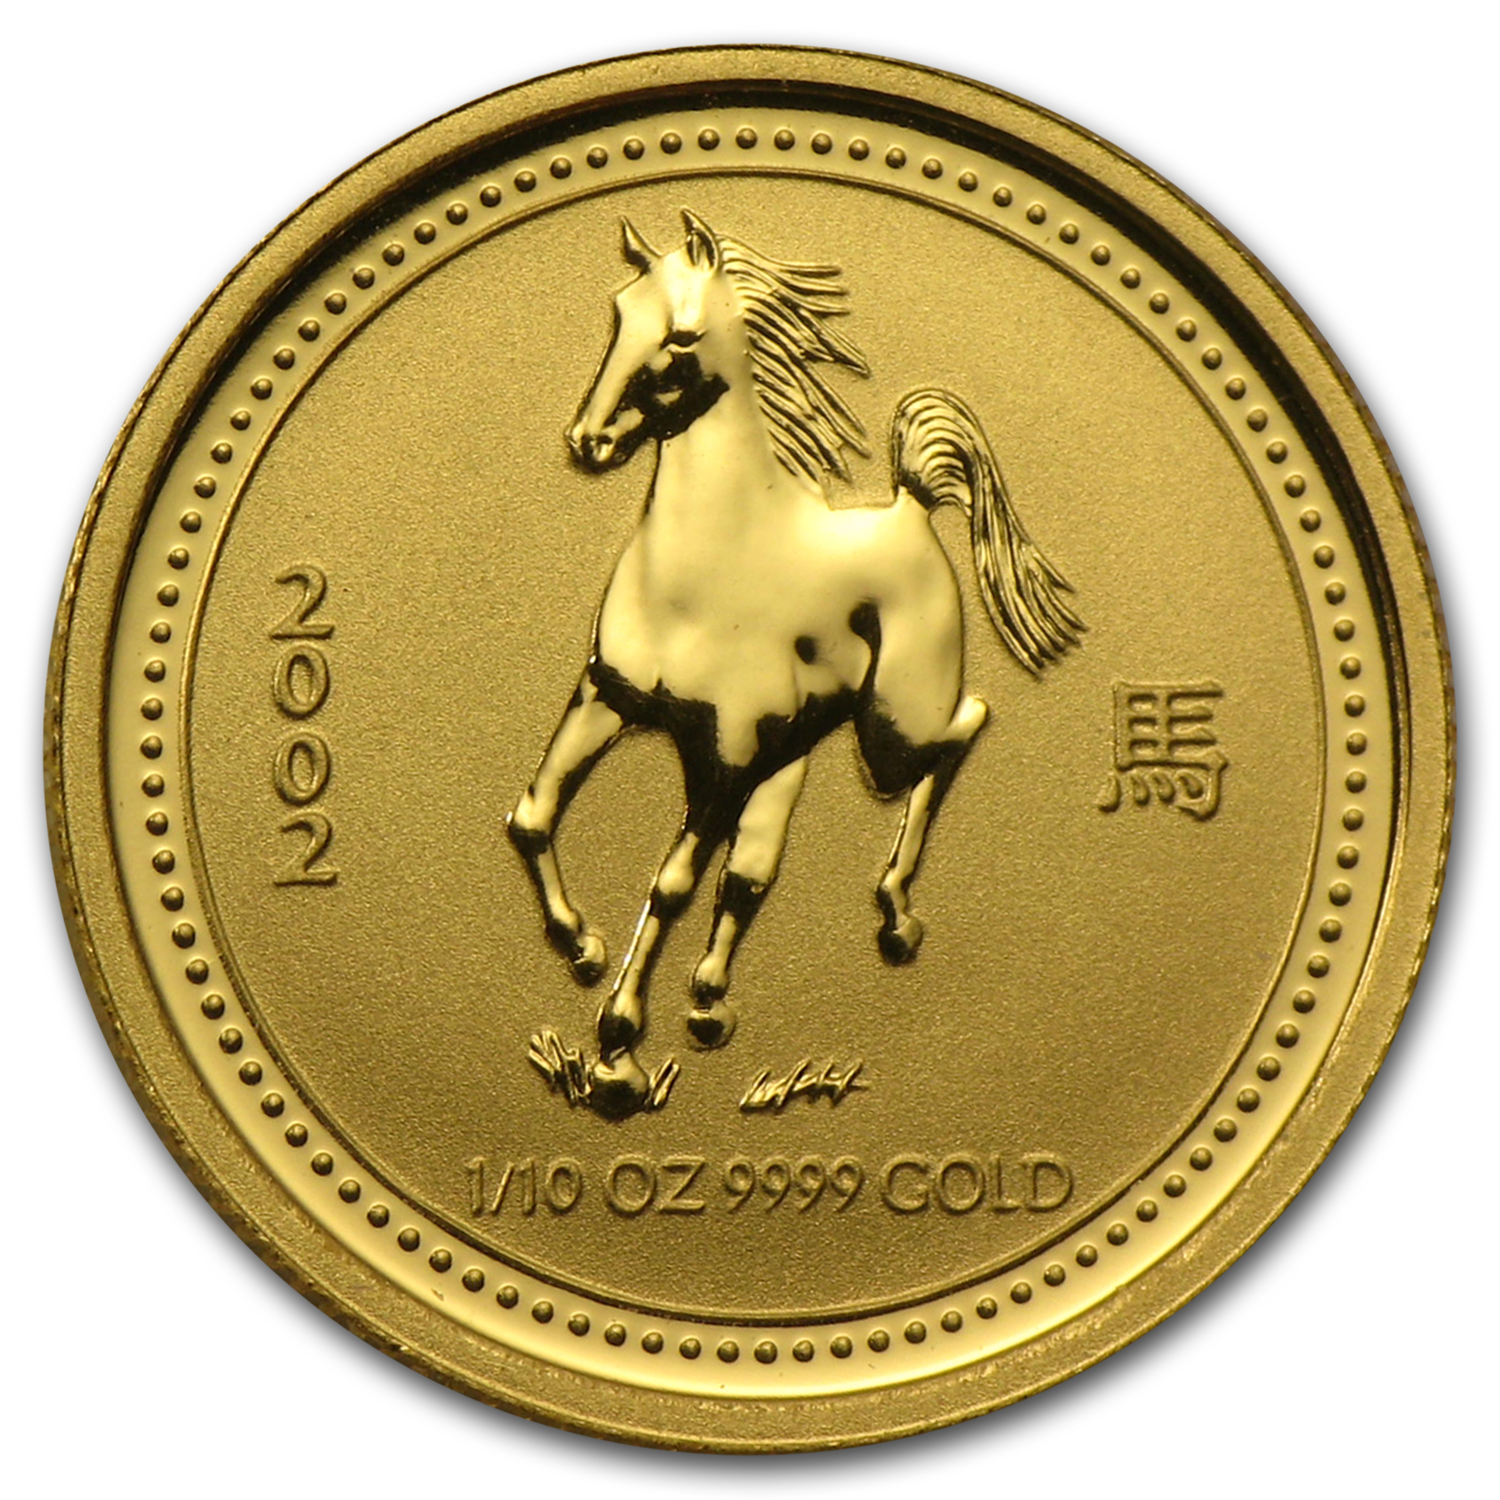 2002 1/10 oz Gold Year of the Horse Lunar Coin (Series I)